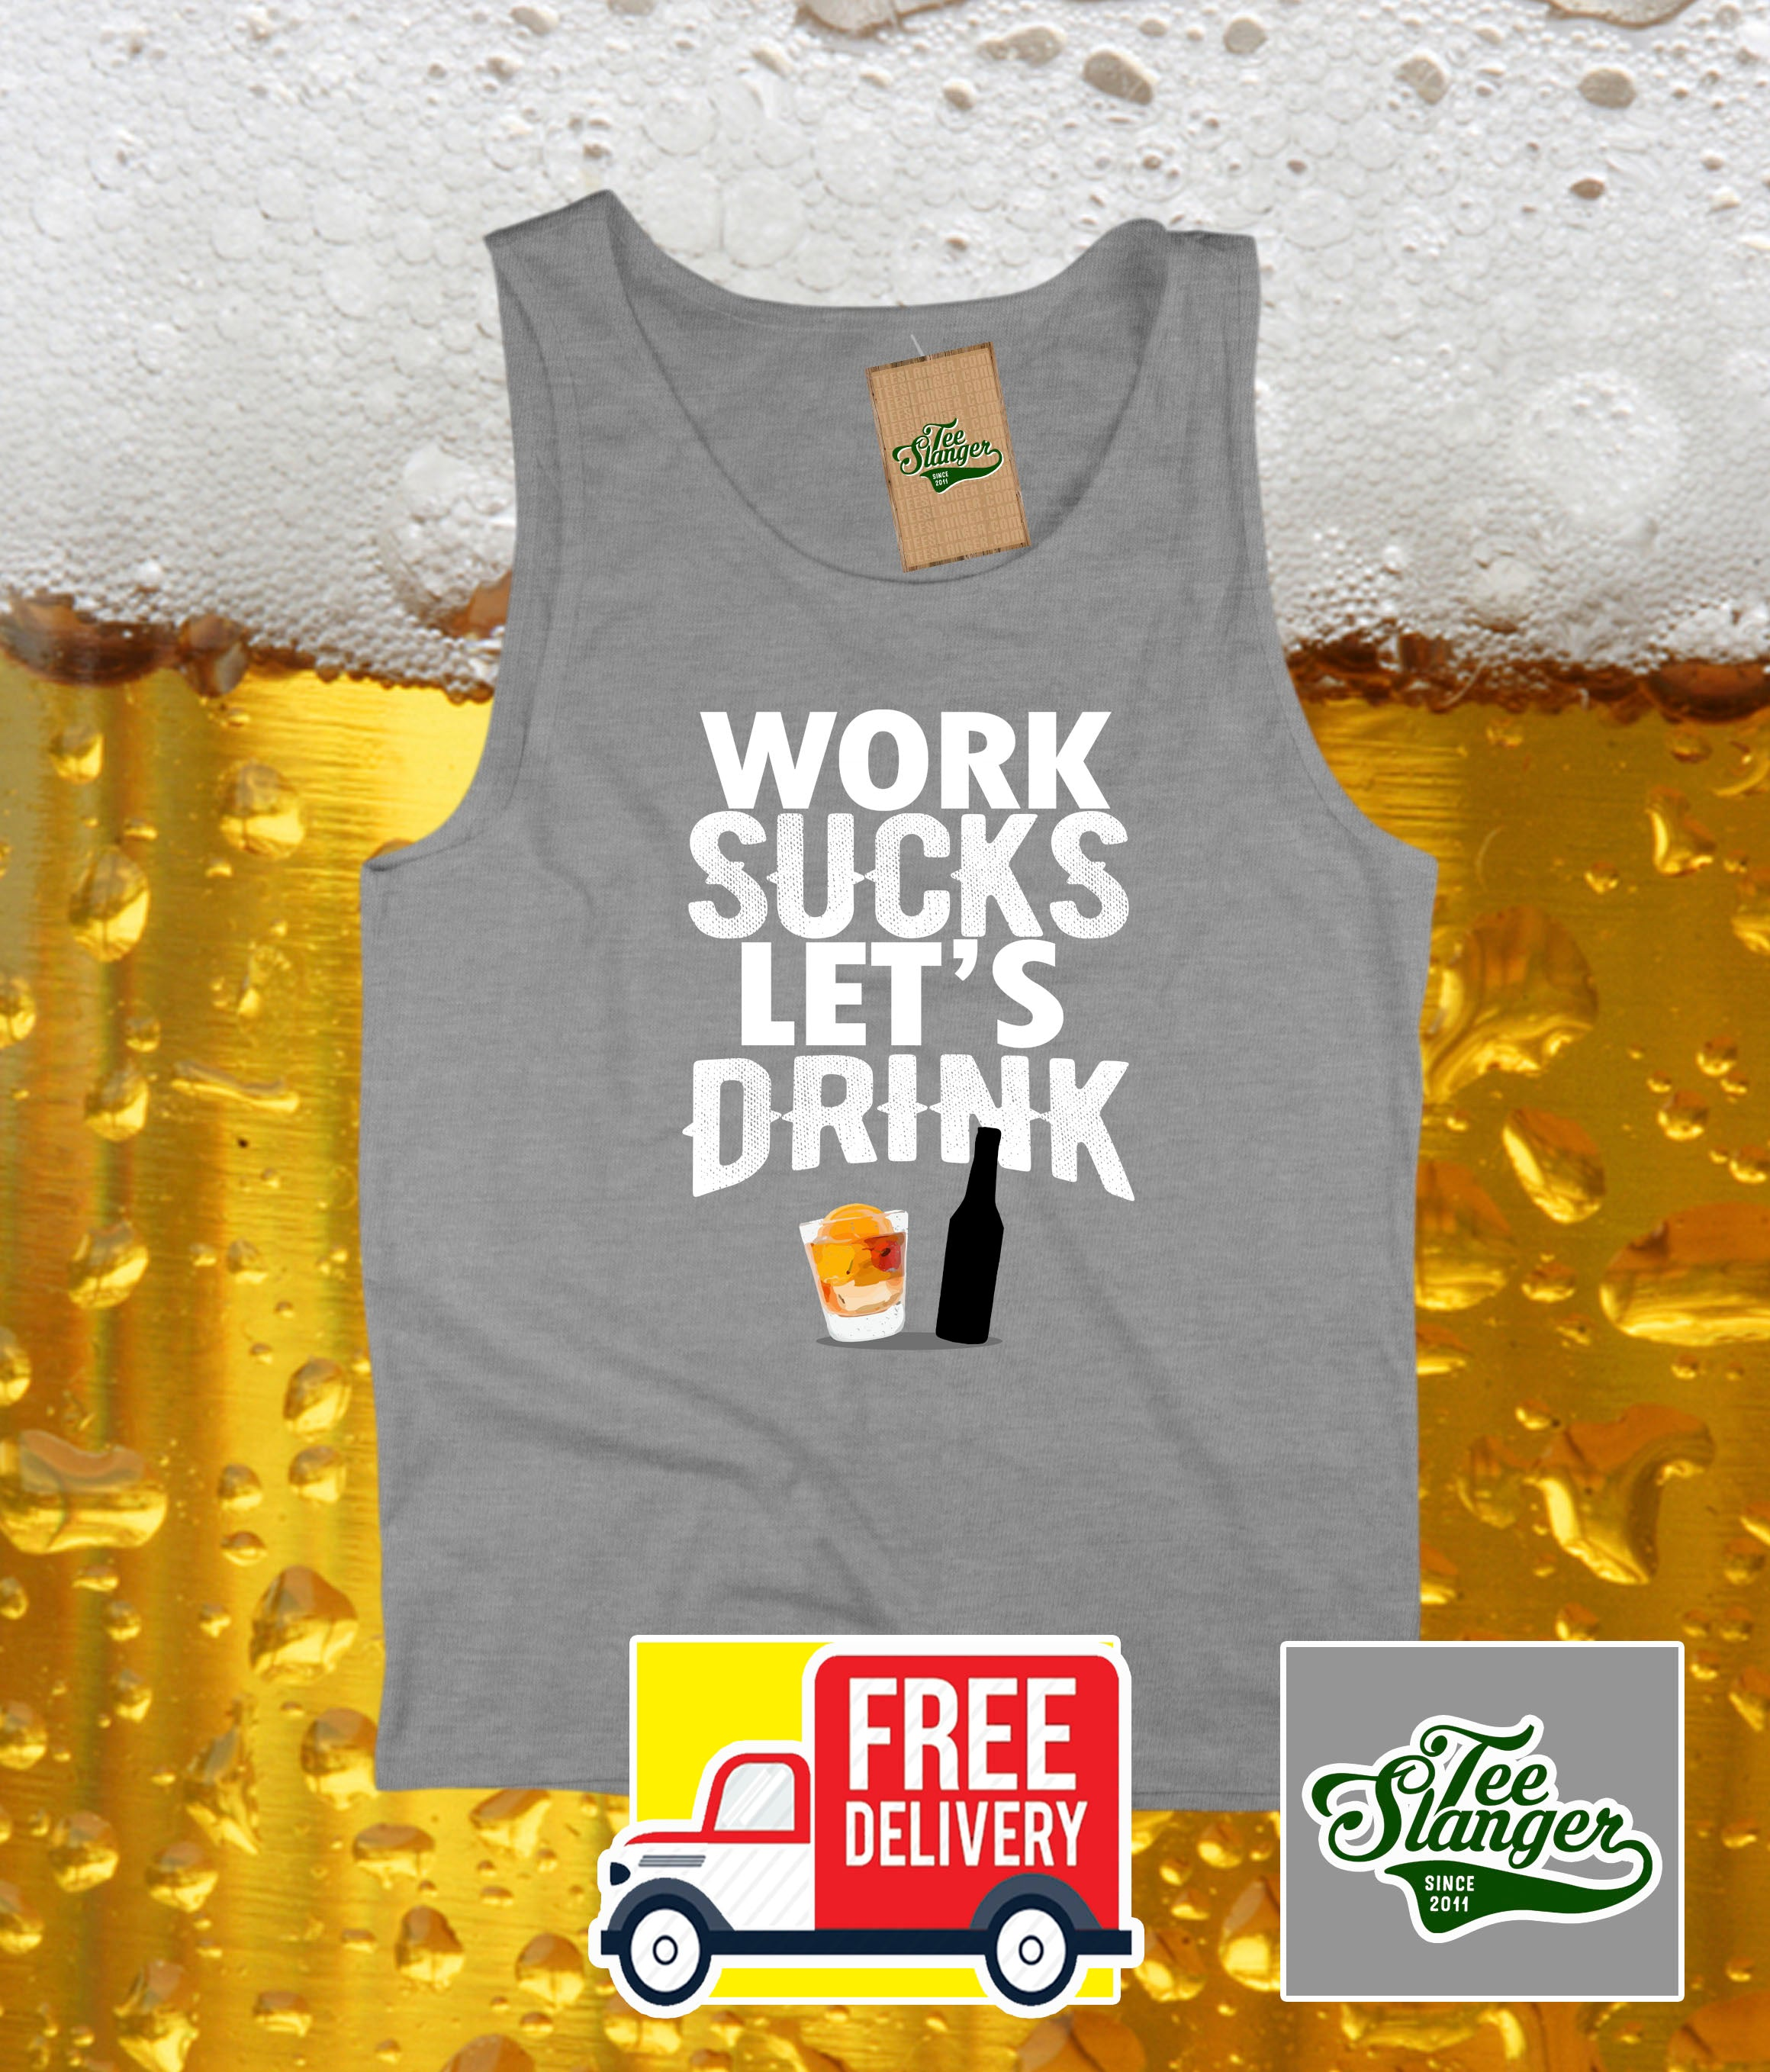 Work Sucks Let's Drink tank top